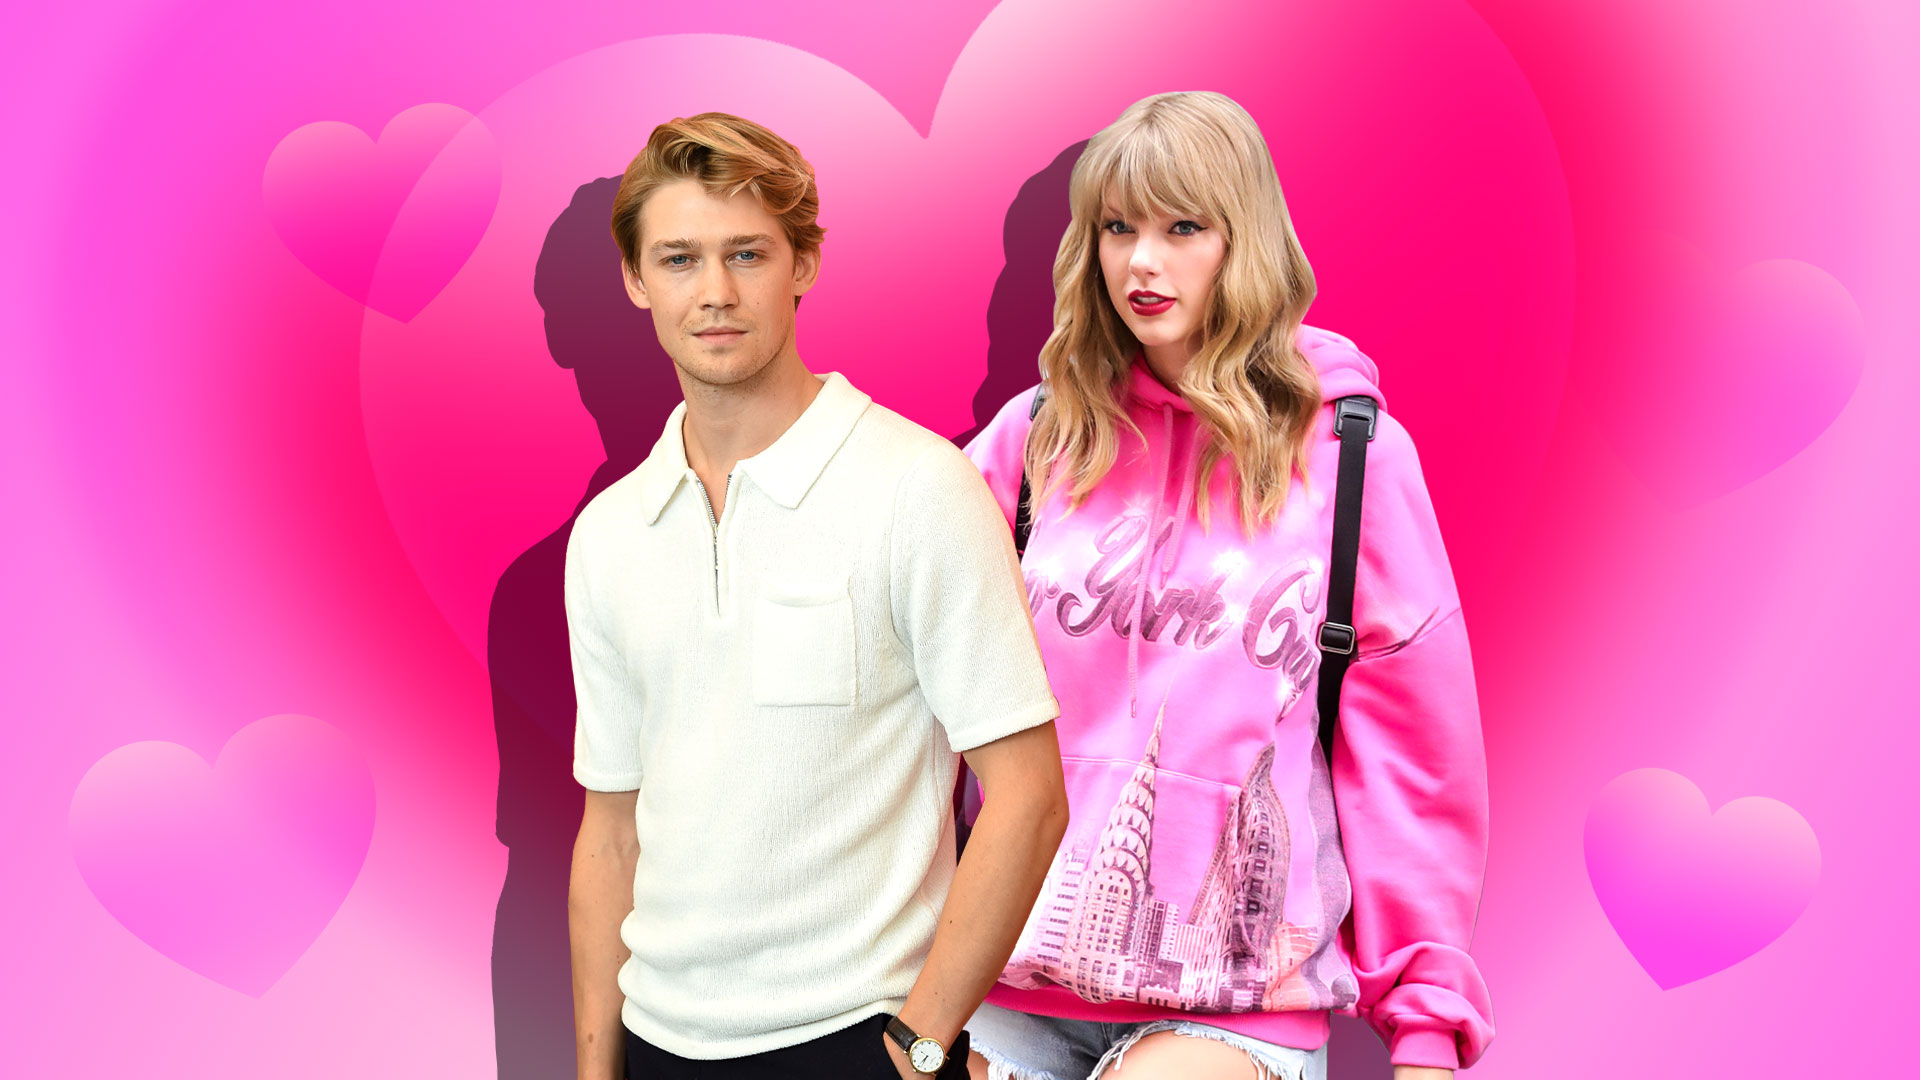 Joe Alwyn Reacts To Taylor Swift S Songs About Him On Lover Reputation Stylecaster